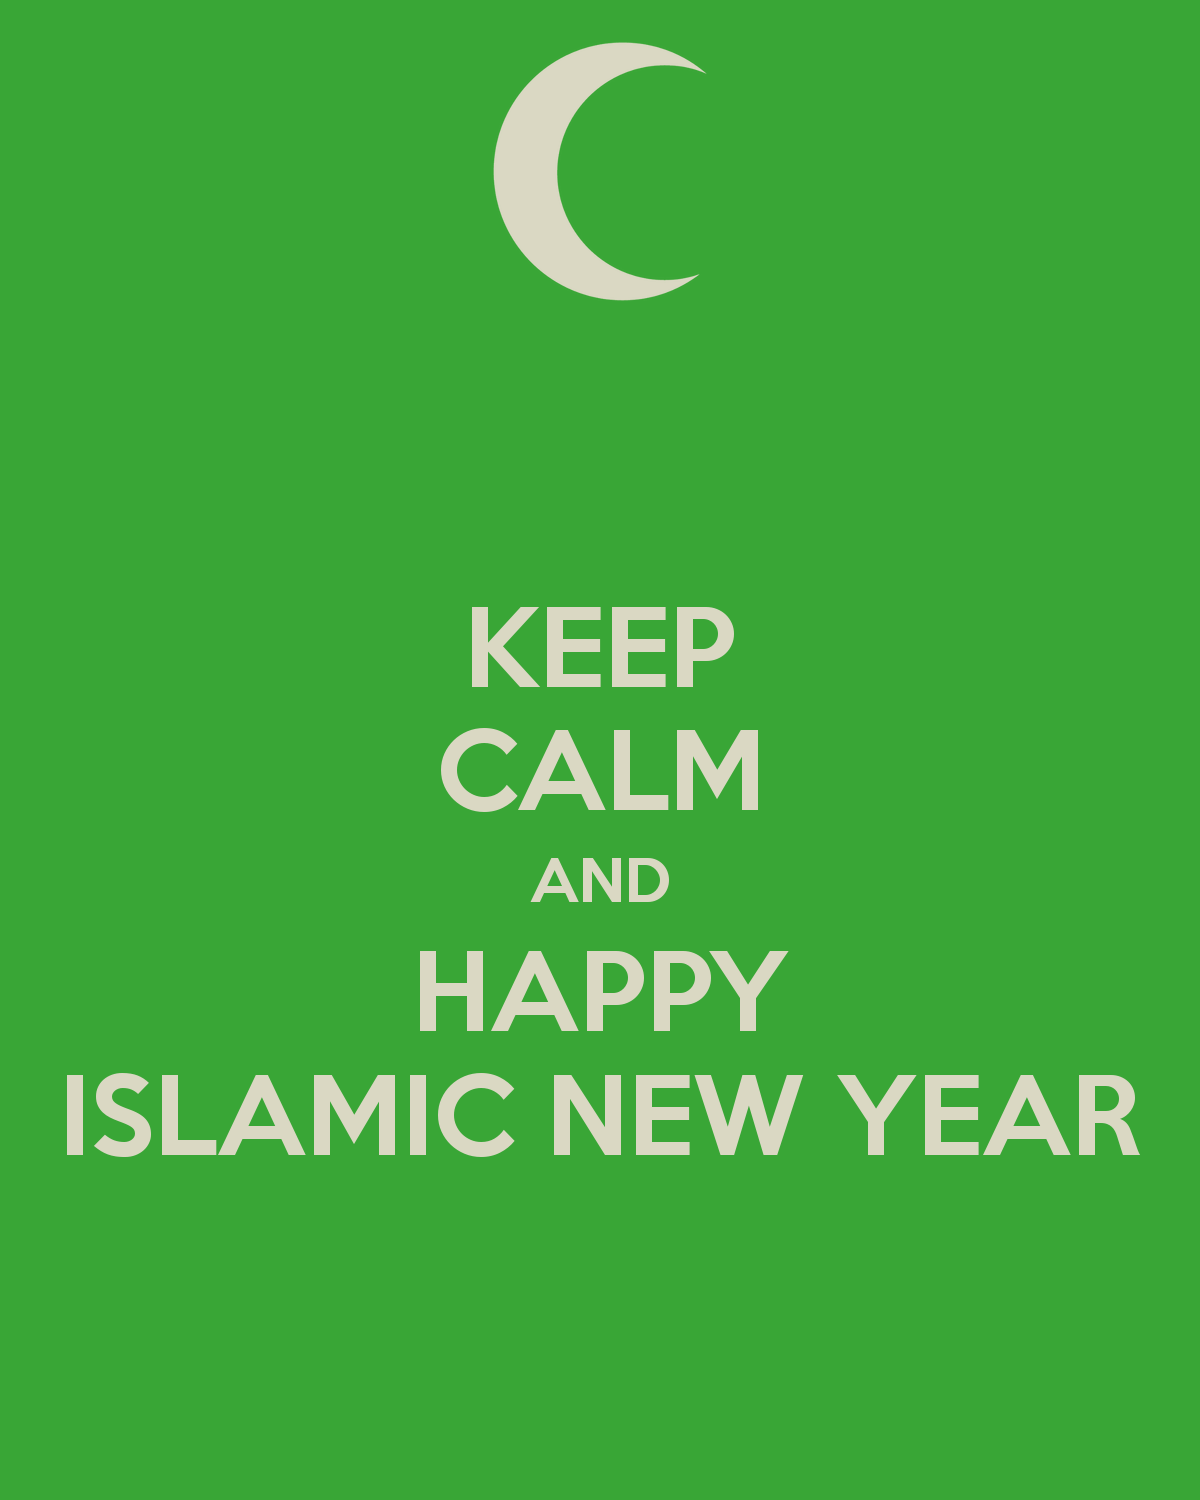 Book Of Soul A New Year Message For New Hijri Year 1435